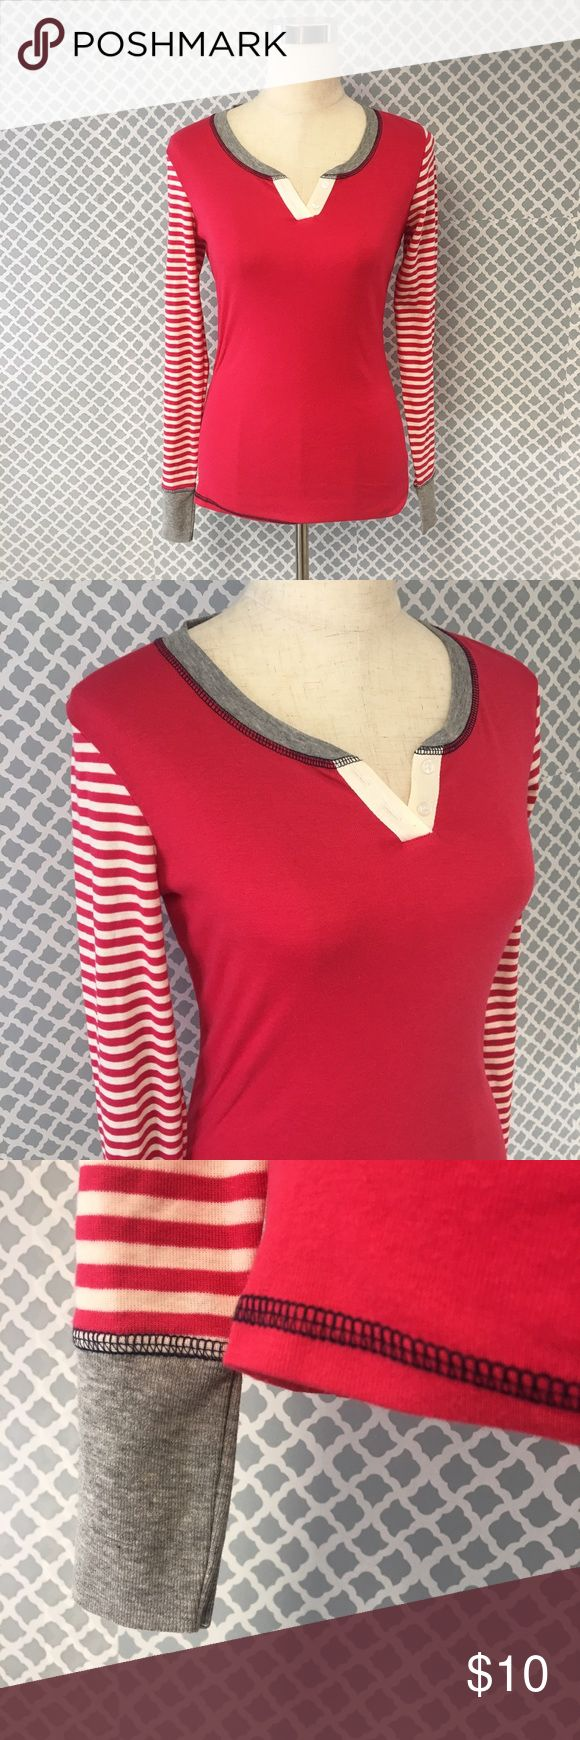 Tommy Hilfiger Long Sleeve Henley Top Women's size small new with tags Tommy Hilfiger long sleeve Henley top. This top is part of a two piece set which I assume were pajamas, but it's so cute in my opinion by itself with jeans as well! Sorry I could not find the bottoms to match 😐 Tops Tees - Long Sleeve